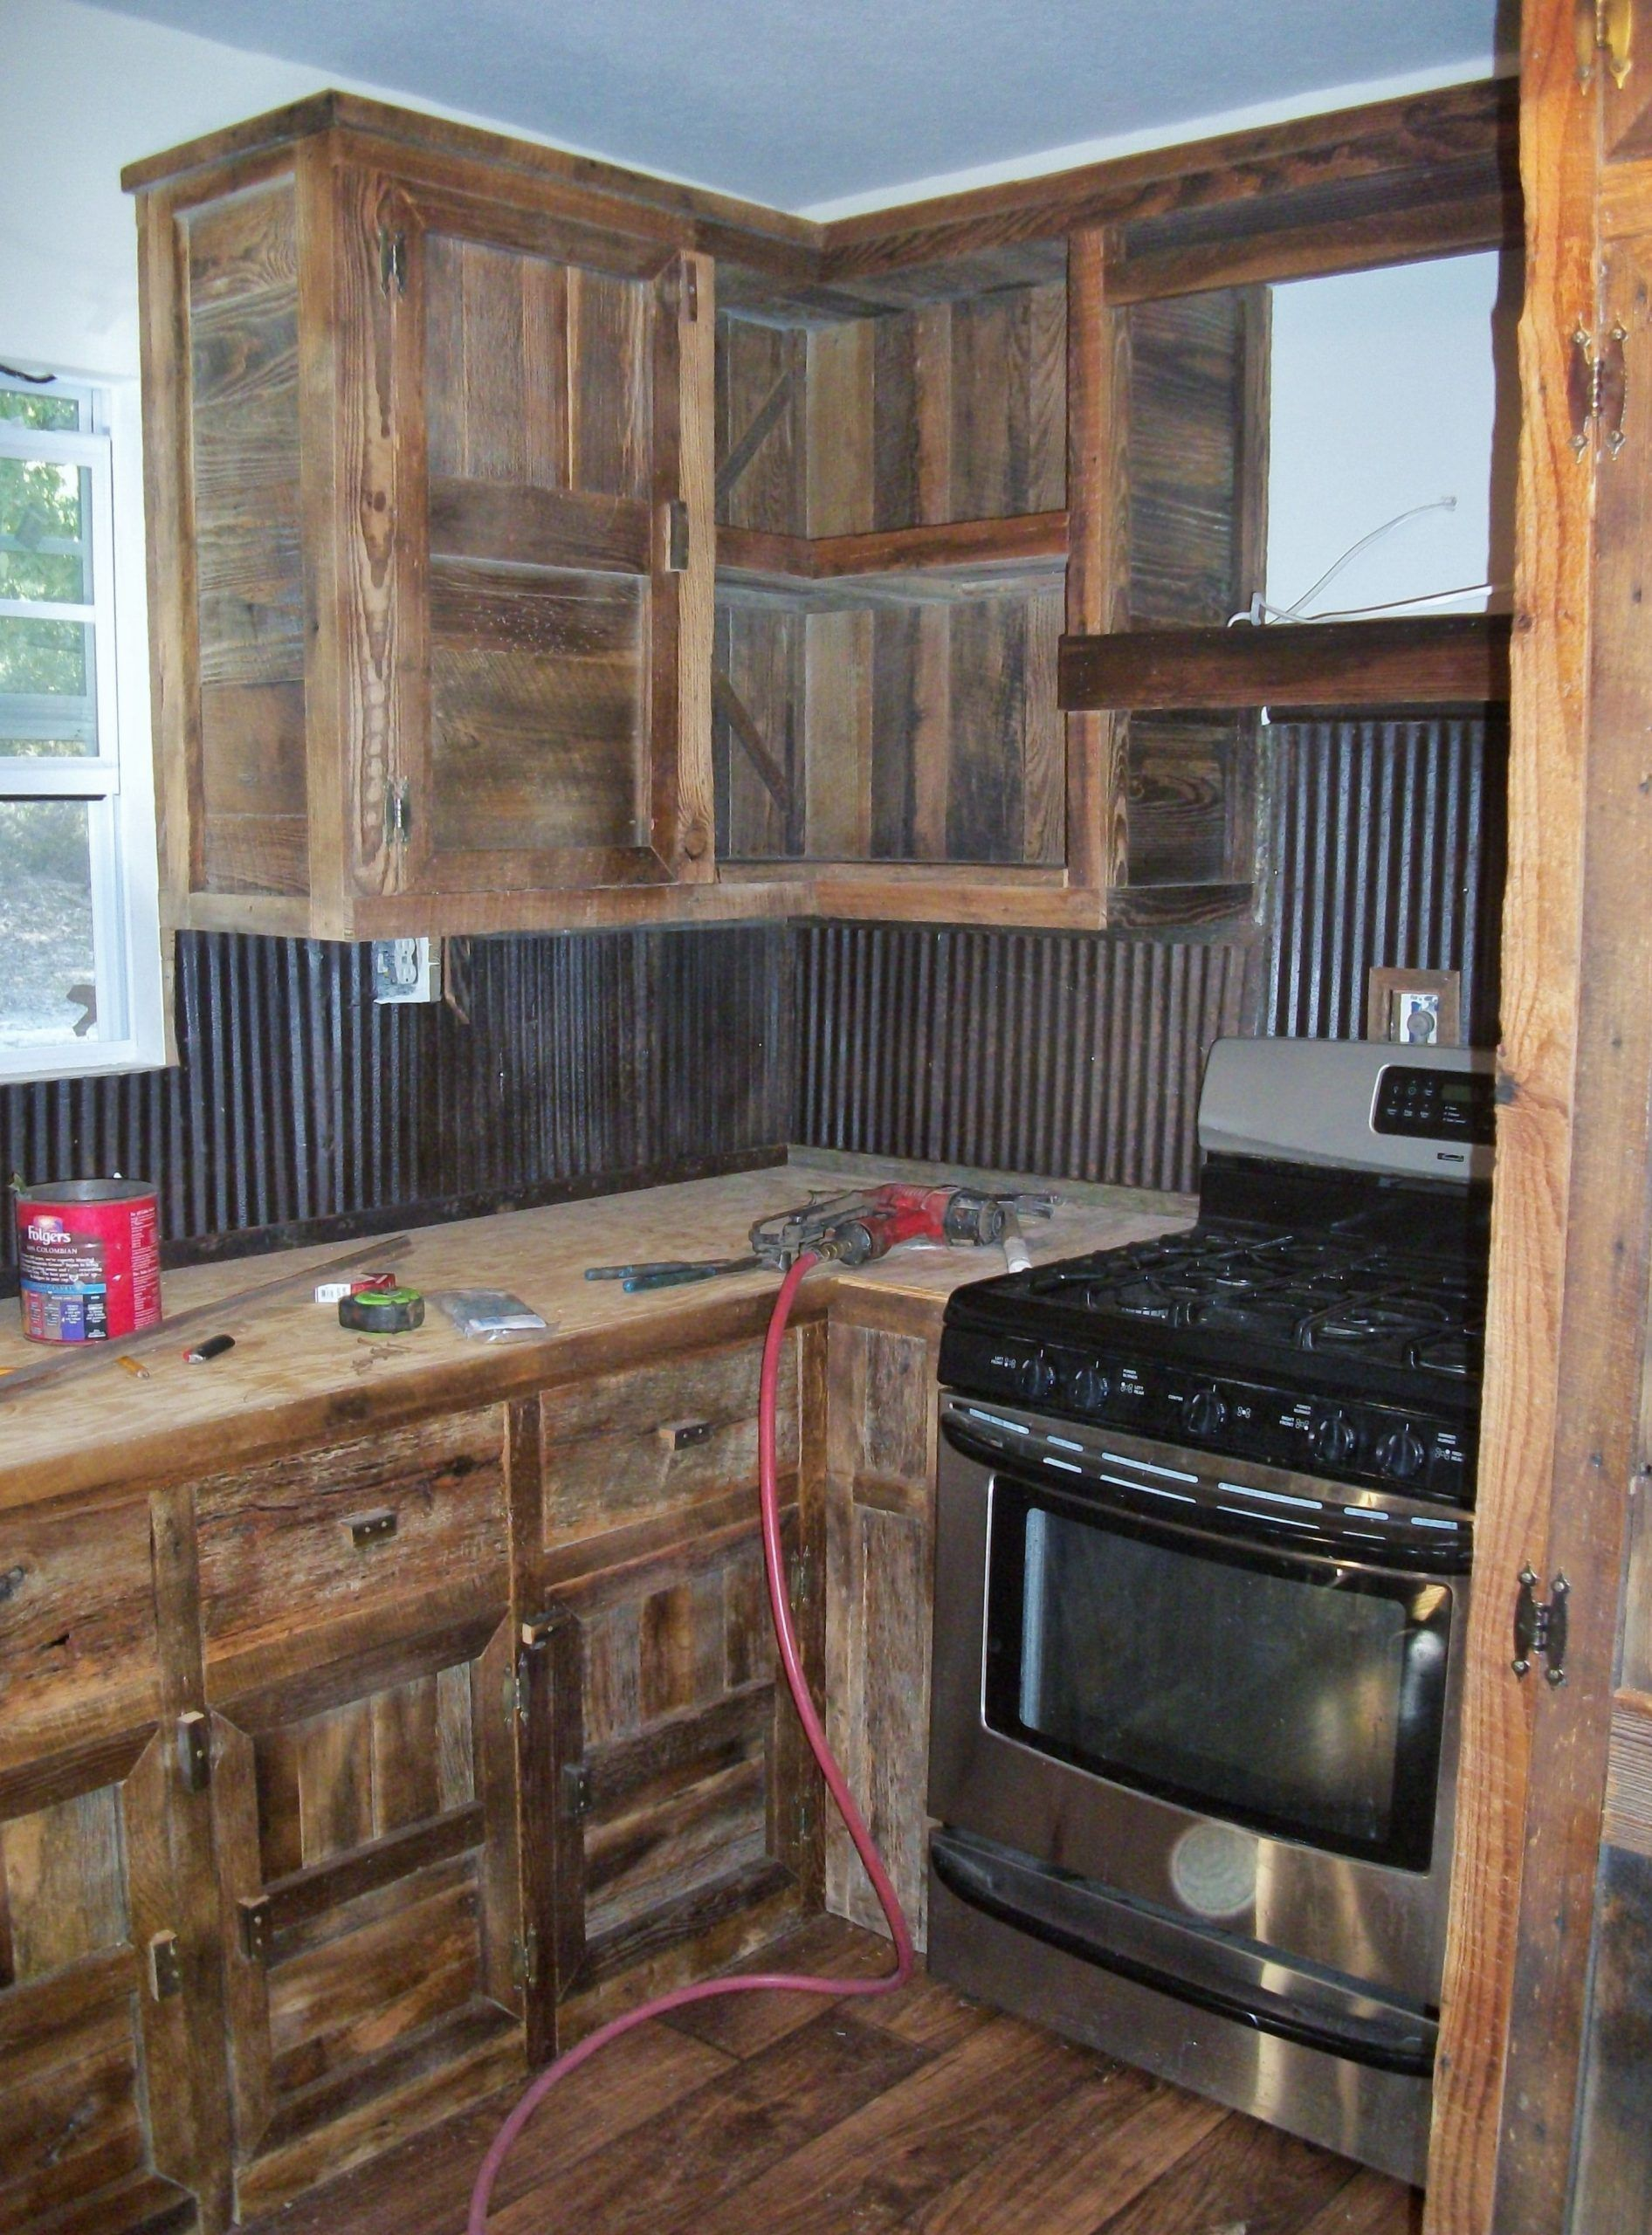 barn red kitchen cabinets for sale barn cabinets kitchen red sale barn cabi barn cabi on kitchen hutch id=52121